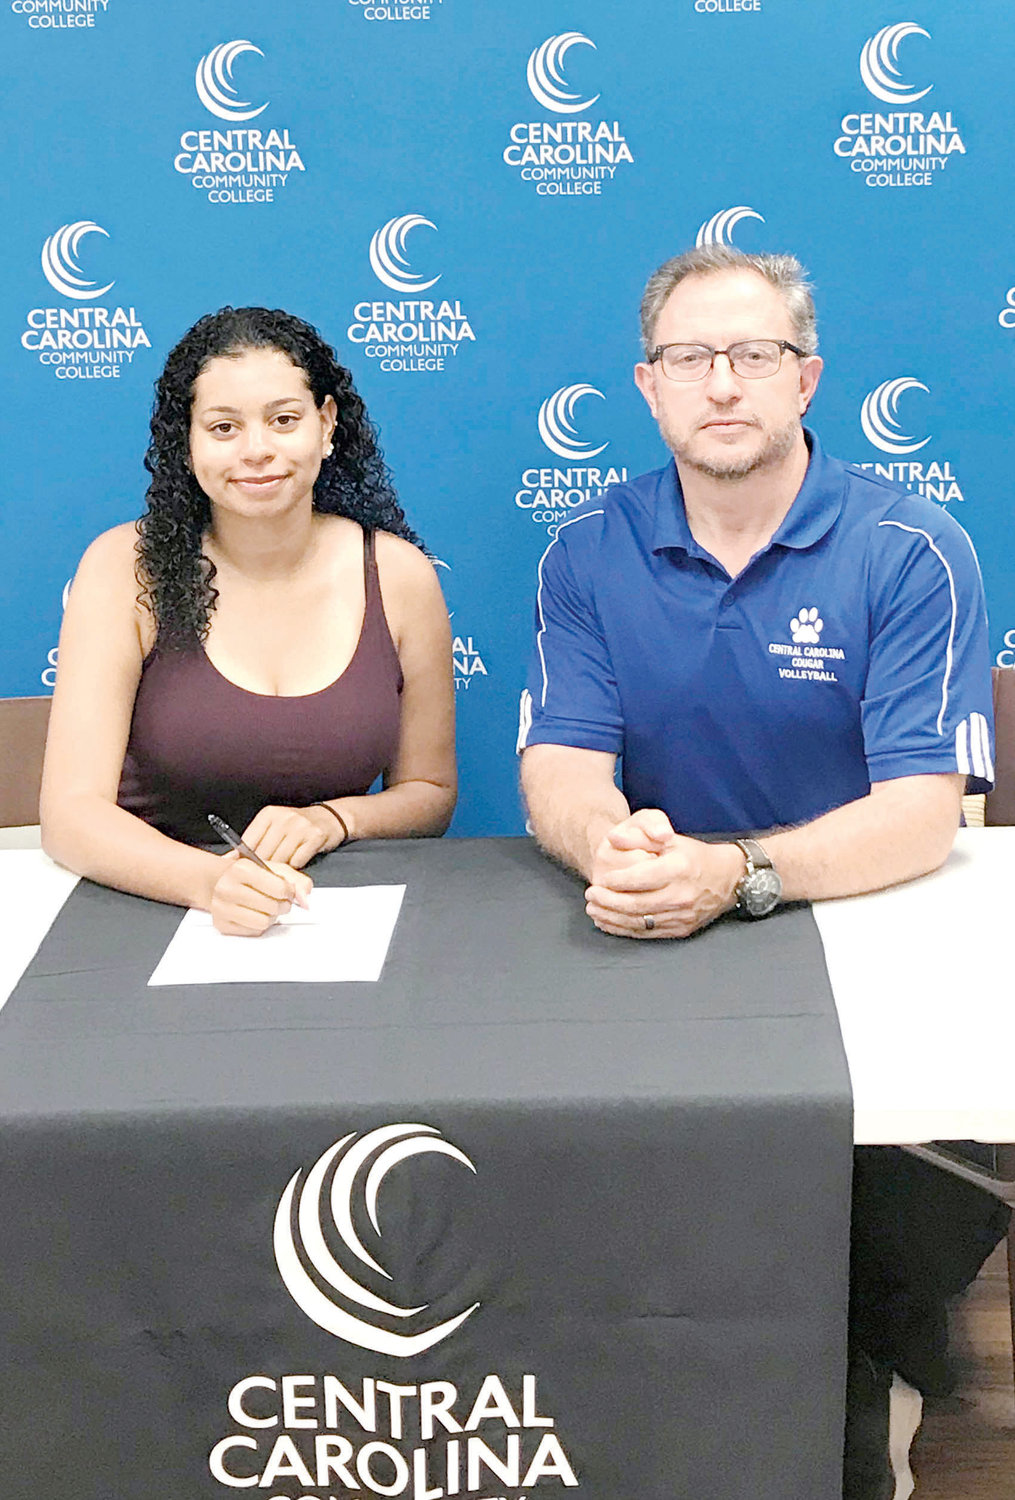 Kayla Stange, left, who attended Overhills High School, will join the Central Carolina Community College volleyball program. She is pictured with CCCC volleyball coach Bill Carter.